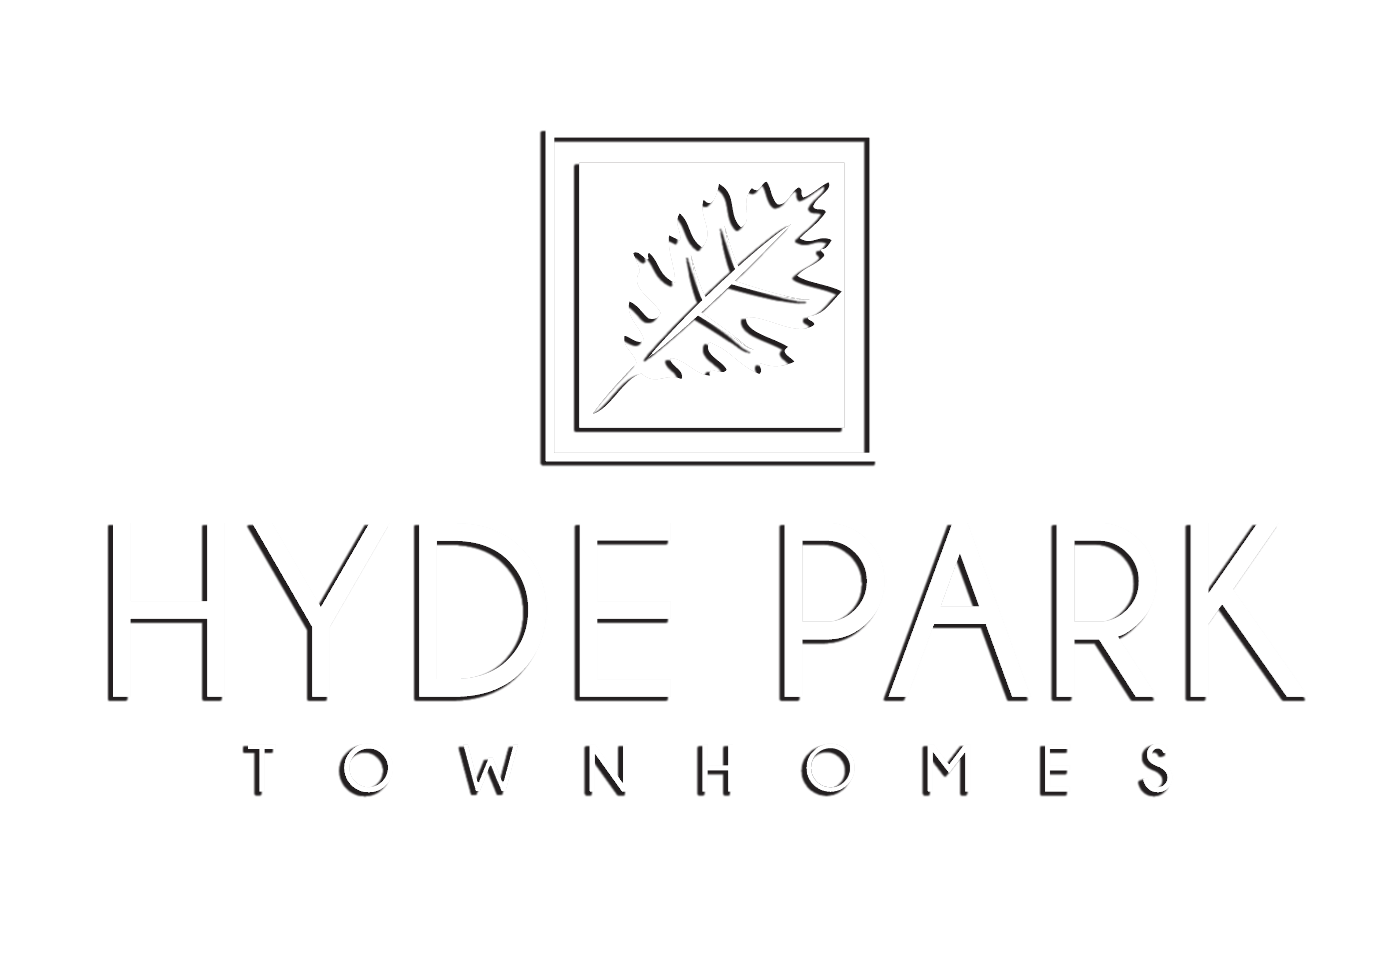 Hyde Park Townhomes Property Logo 31